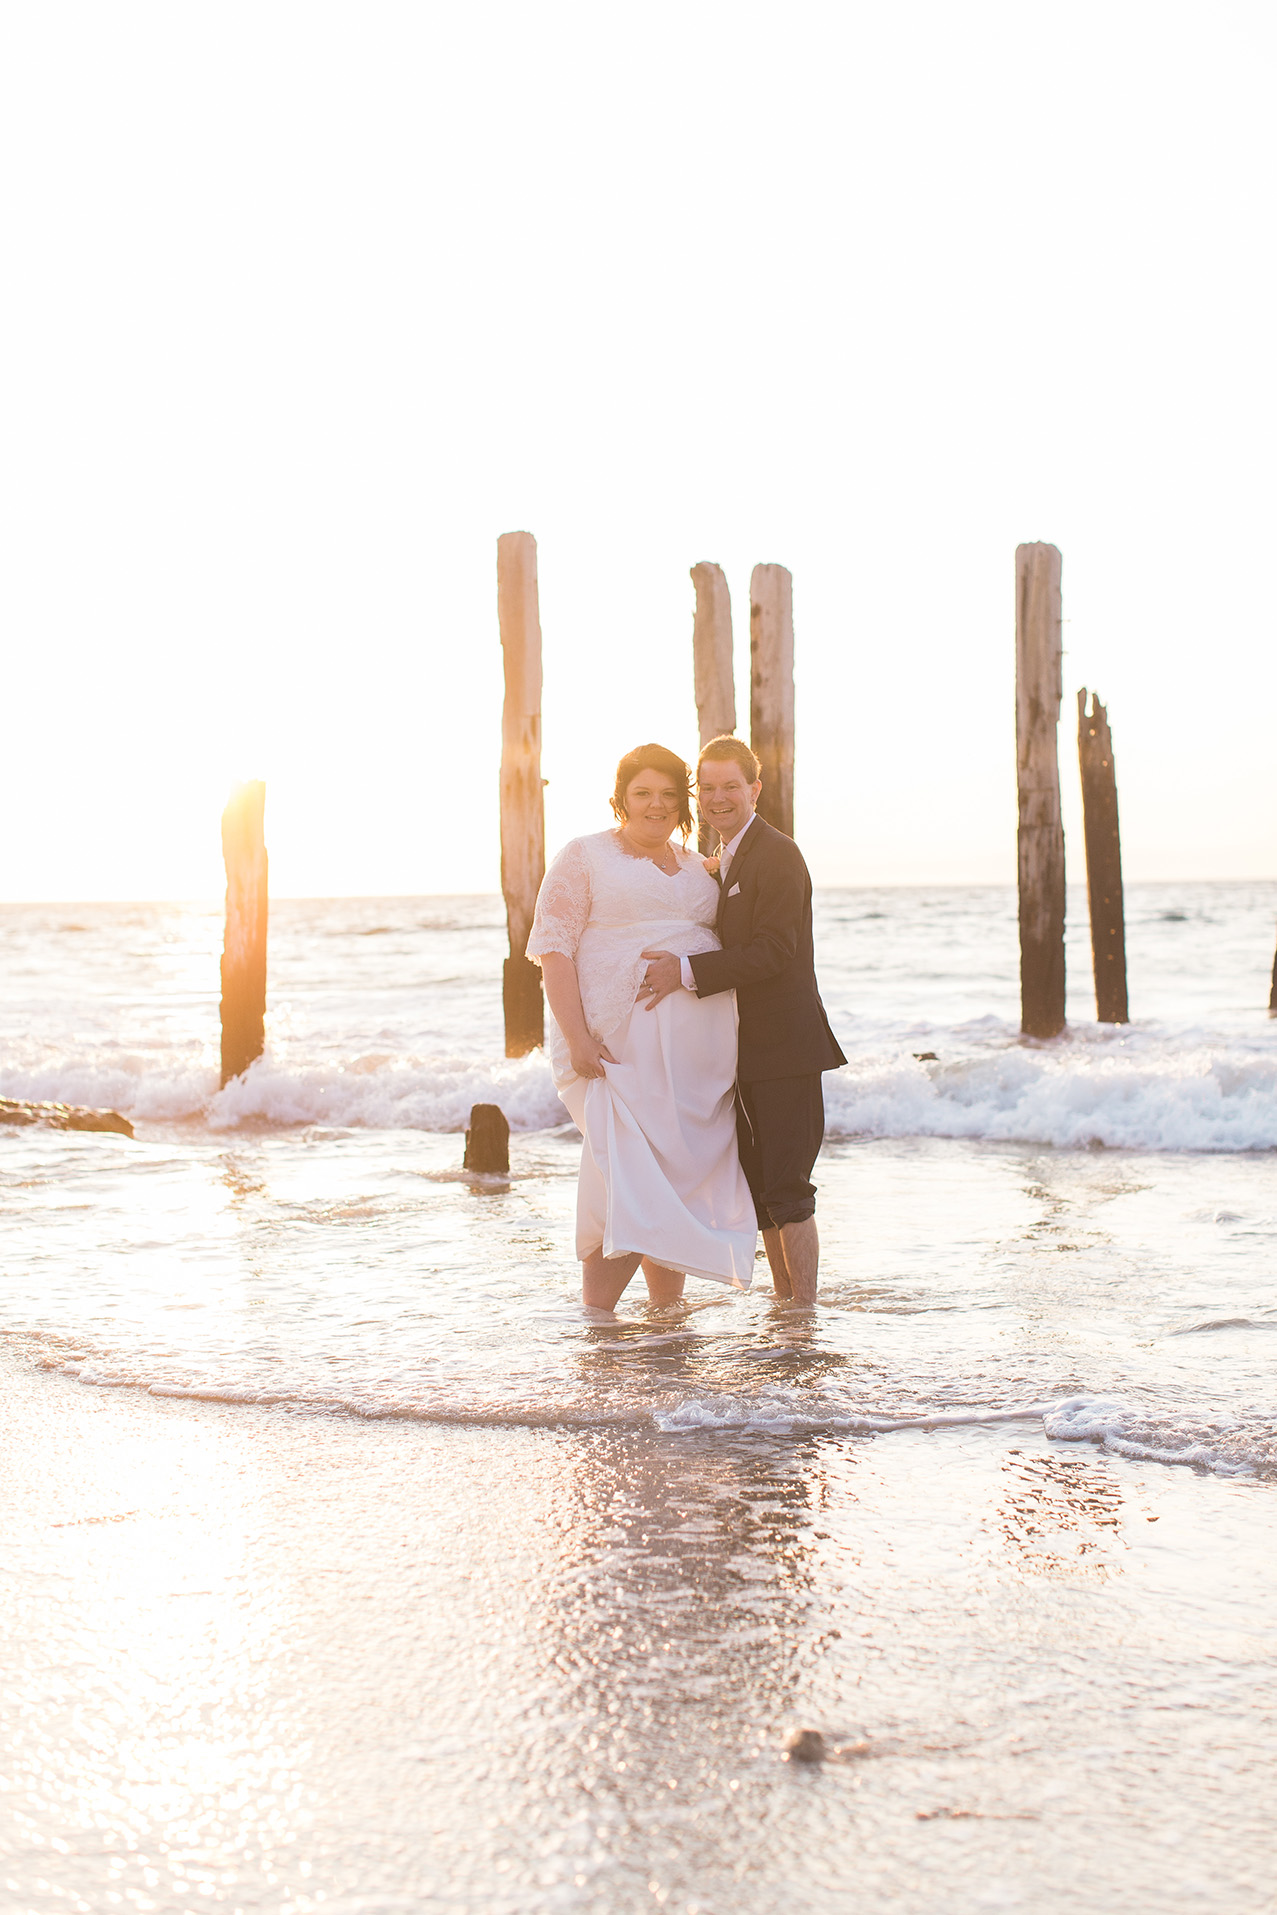 McLaren Vale Sunset Beach Wedding 53.jpg